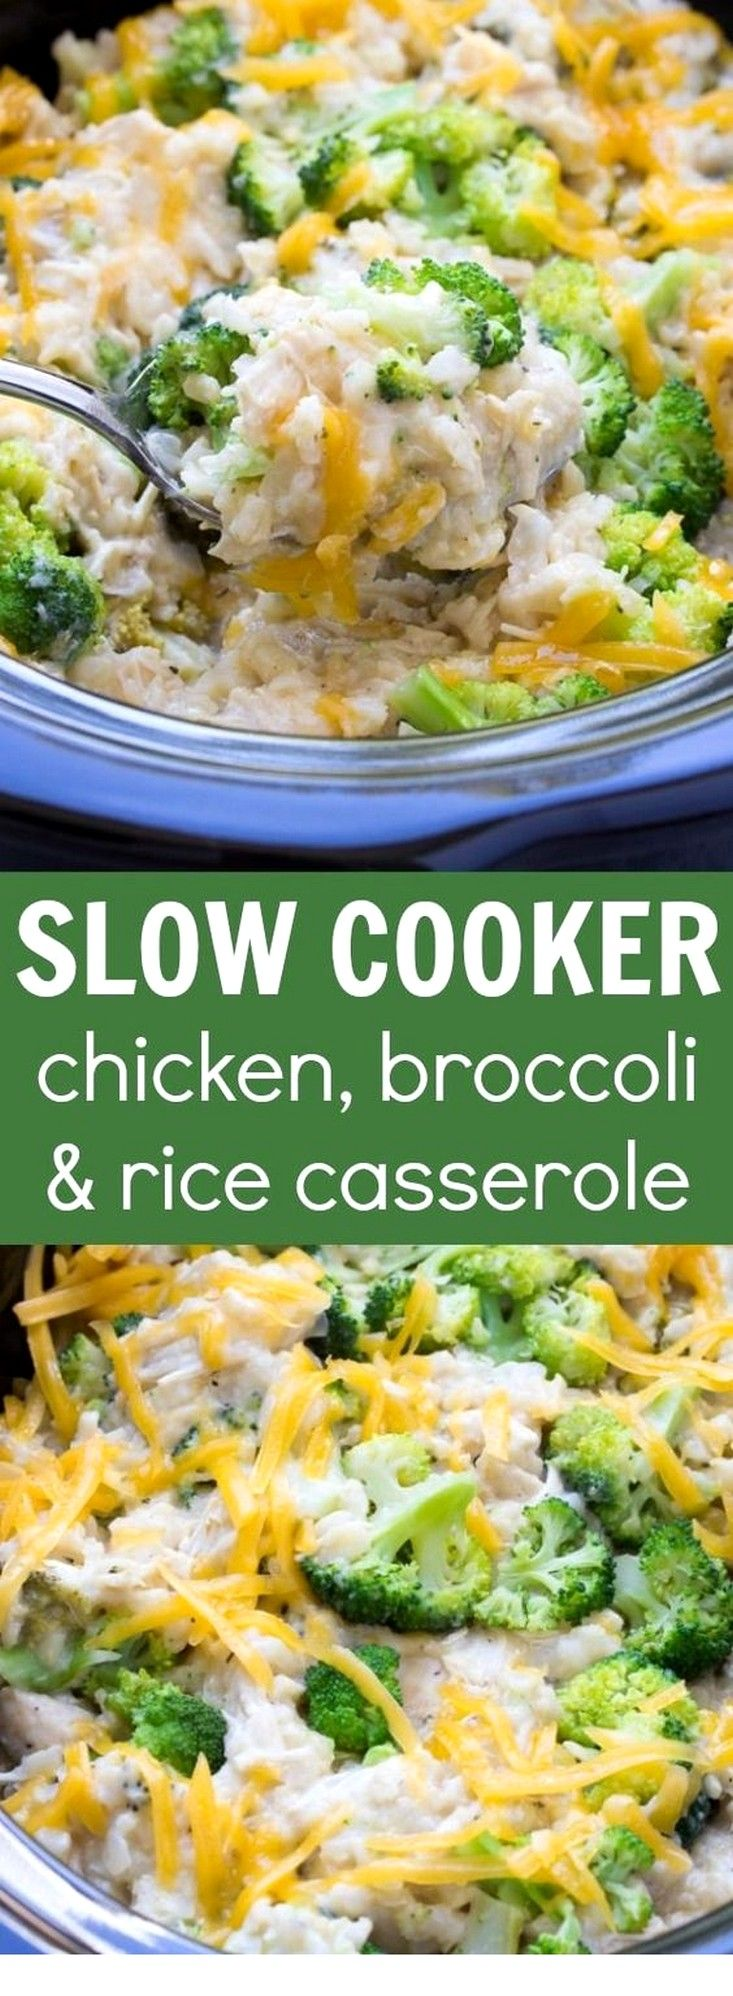 Slow Cooker Chicken, Broccoli And Rice Casserole   Slow Cooker Recipes #ricecookermeals